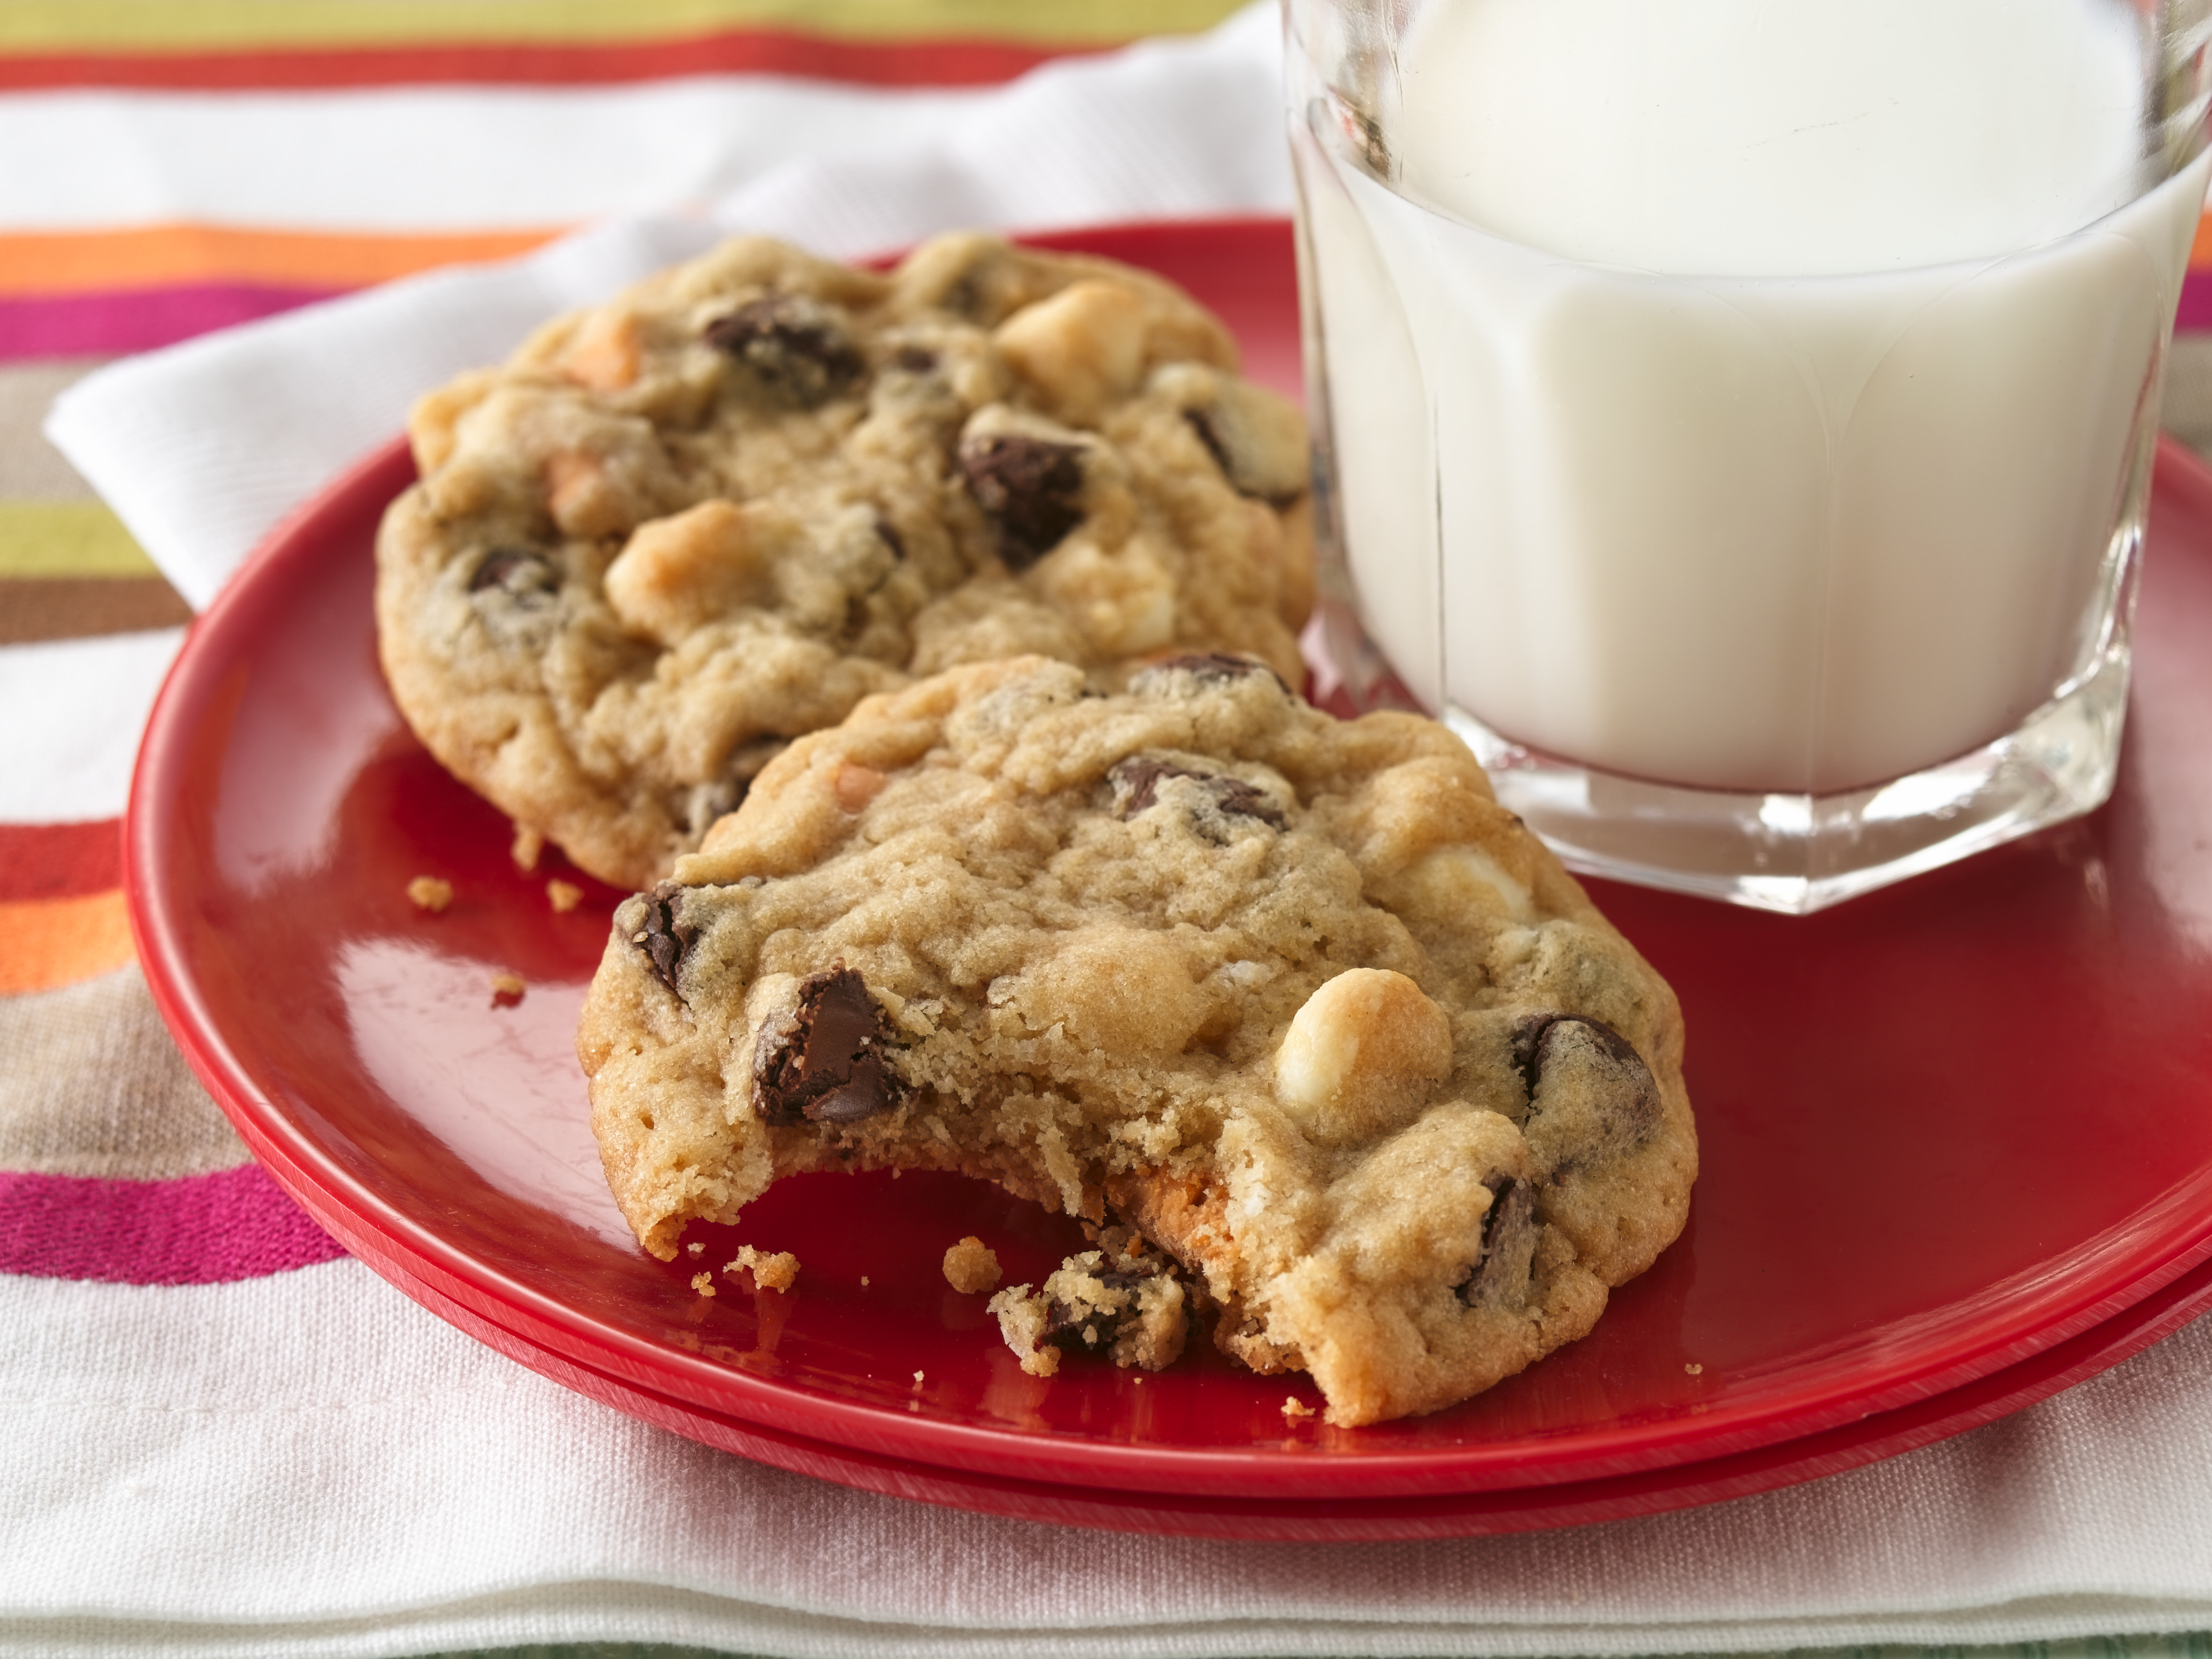 Cookies and milk on a red plate